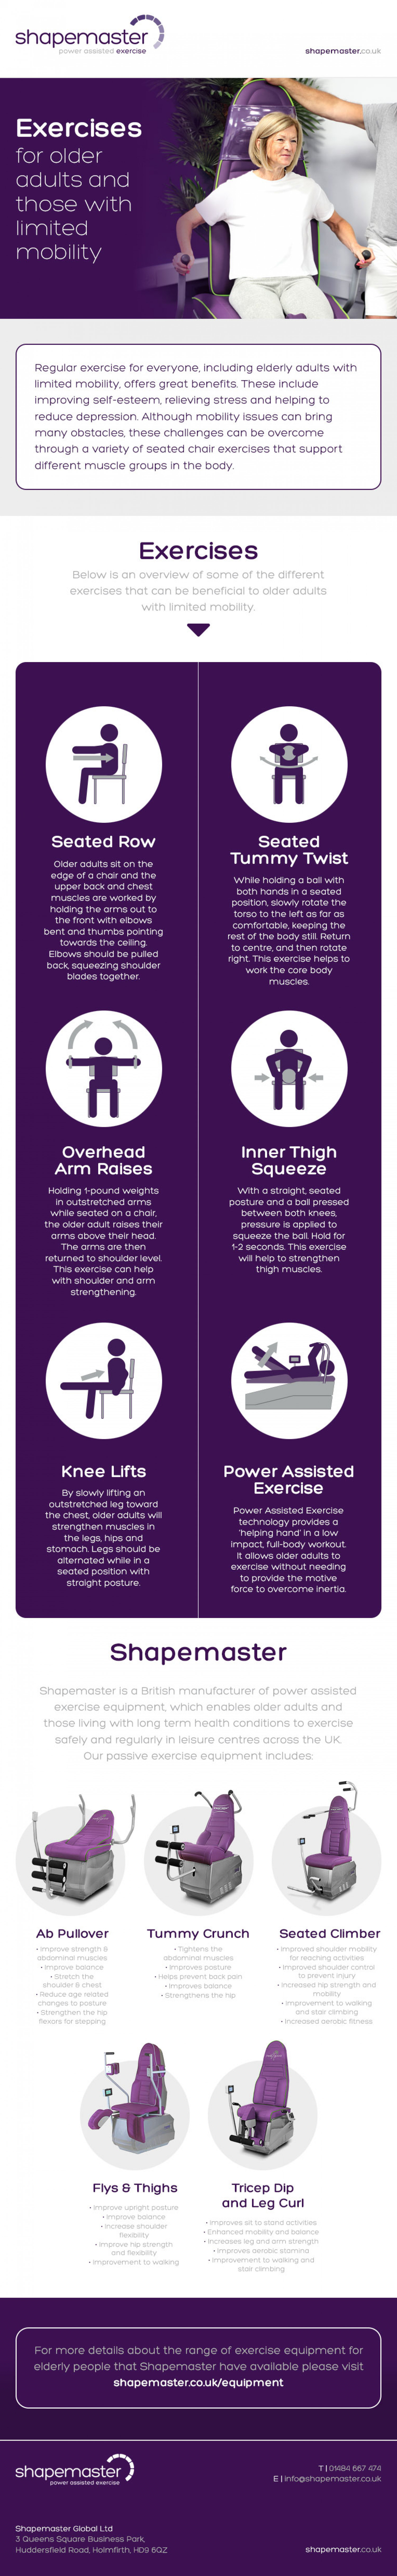 Exercises for Older Adults and Those with Limited Mobility Infographic